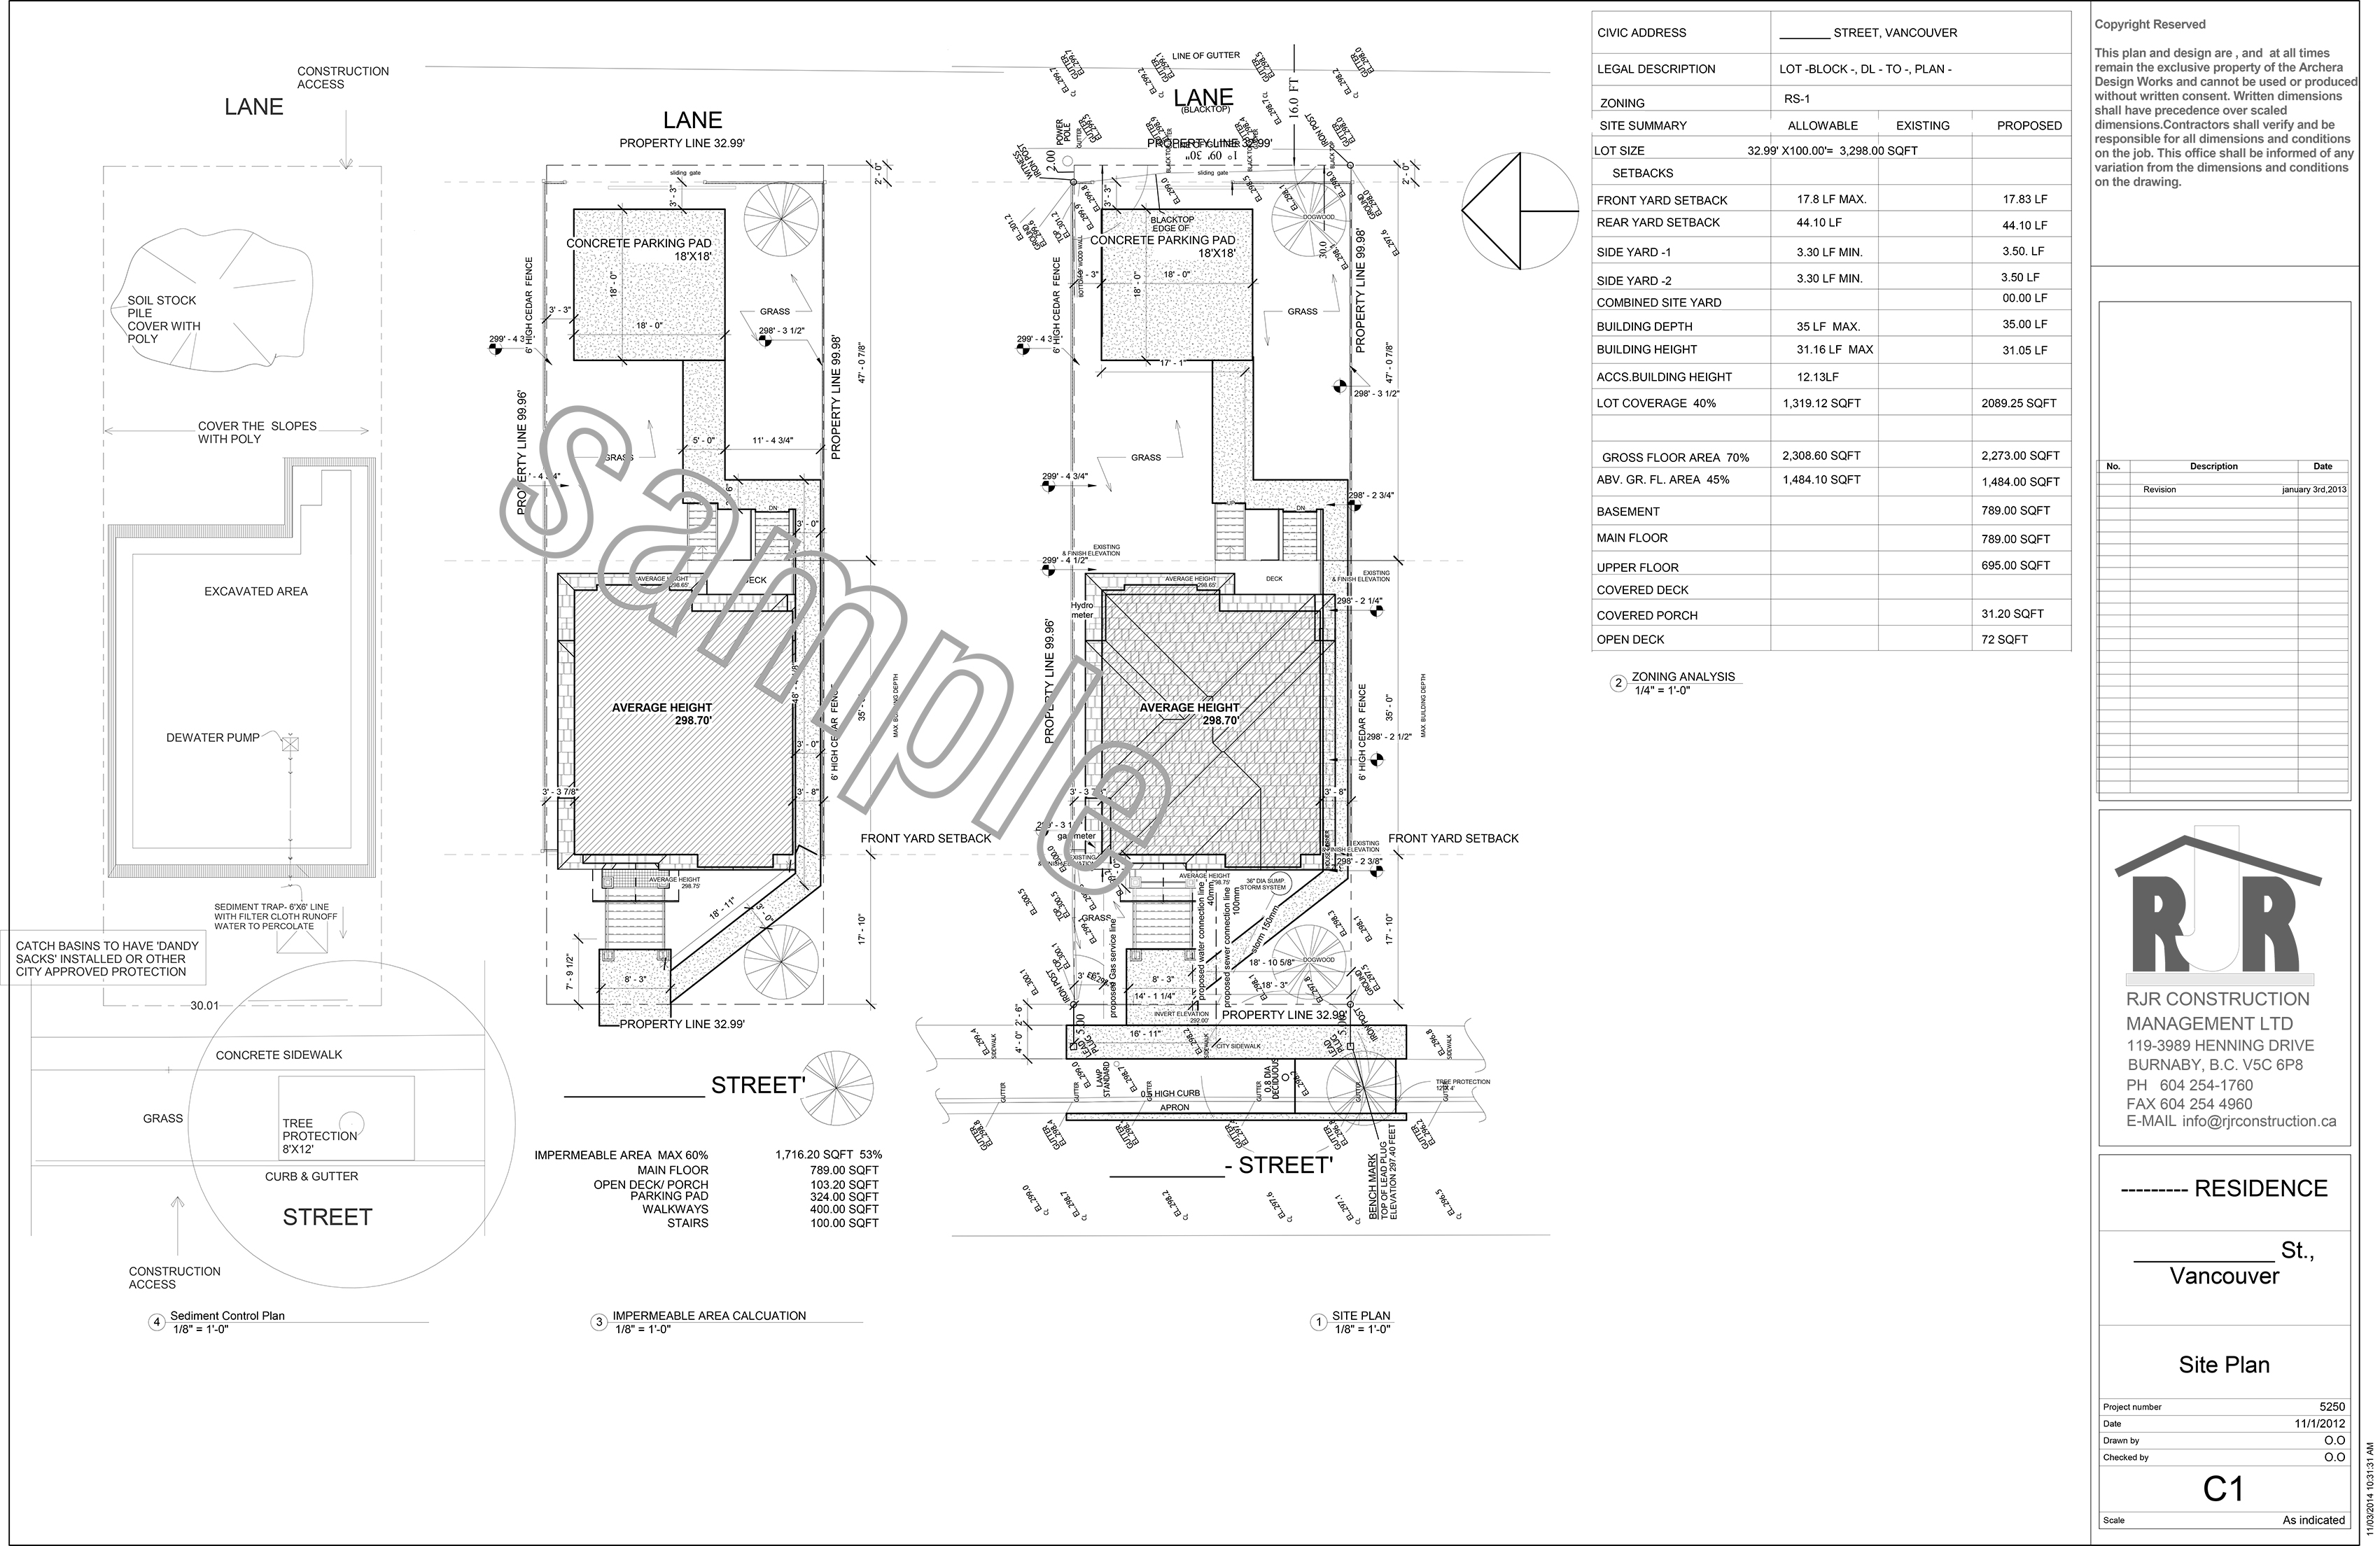 sample drawings - rjr construction group